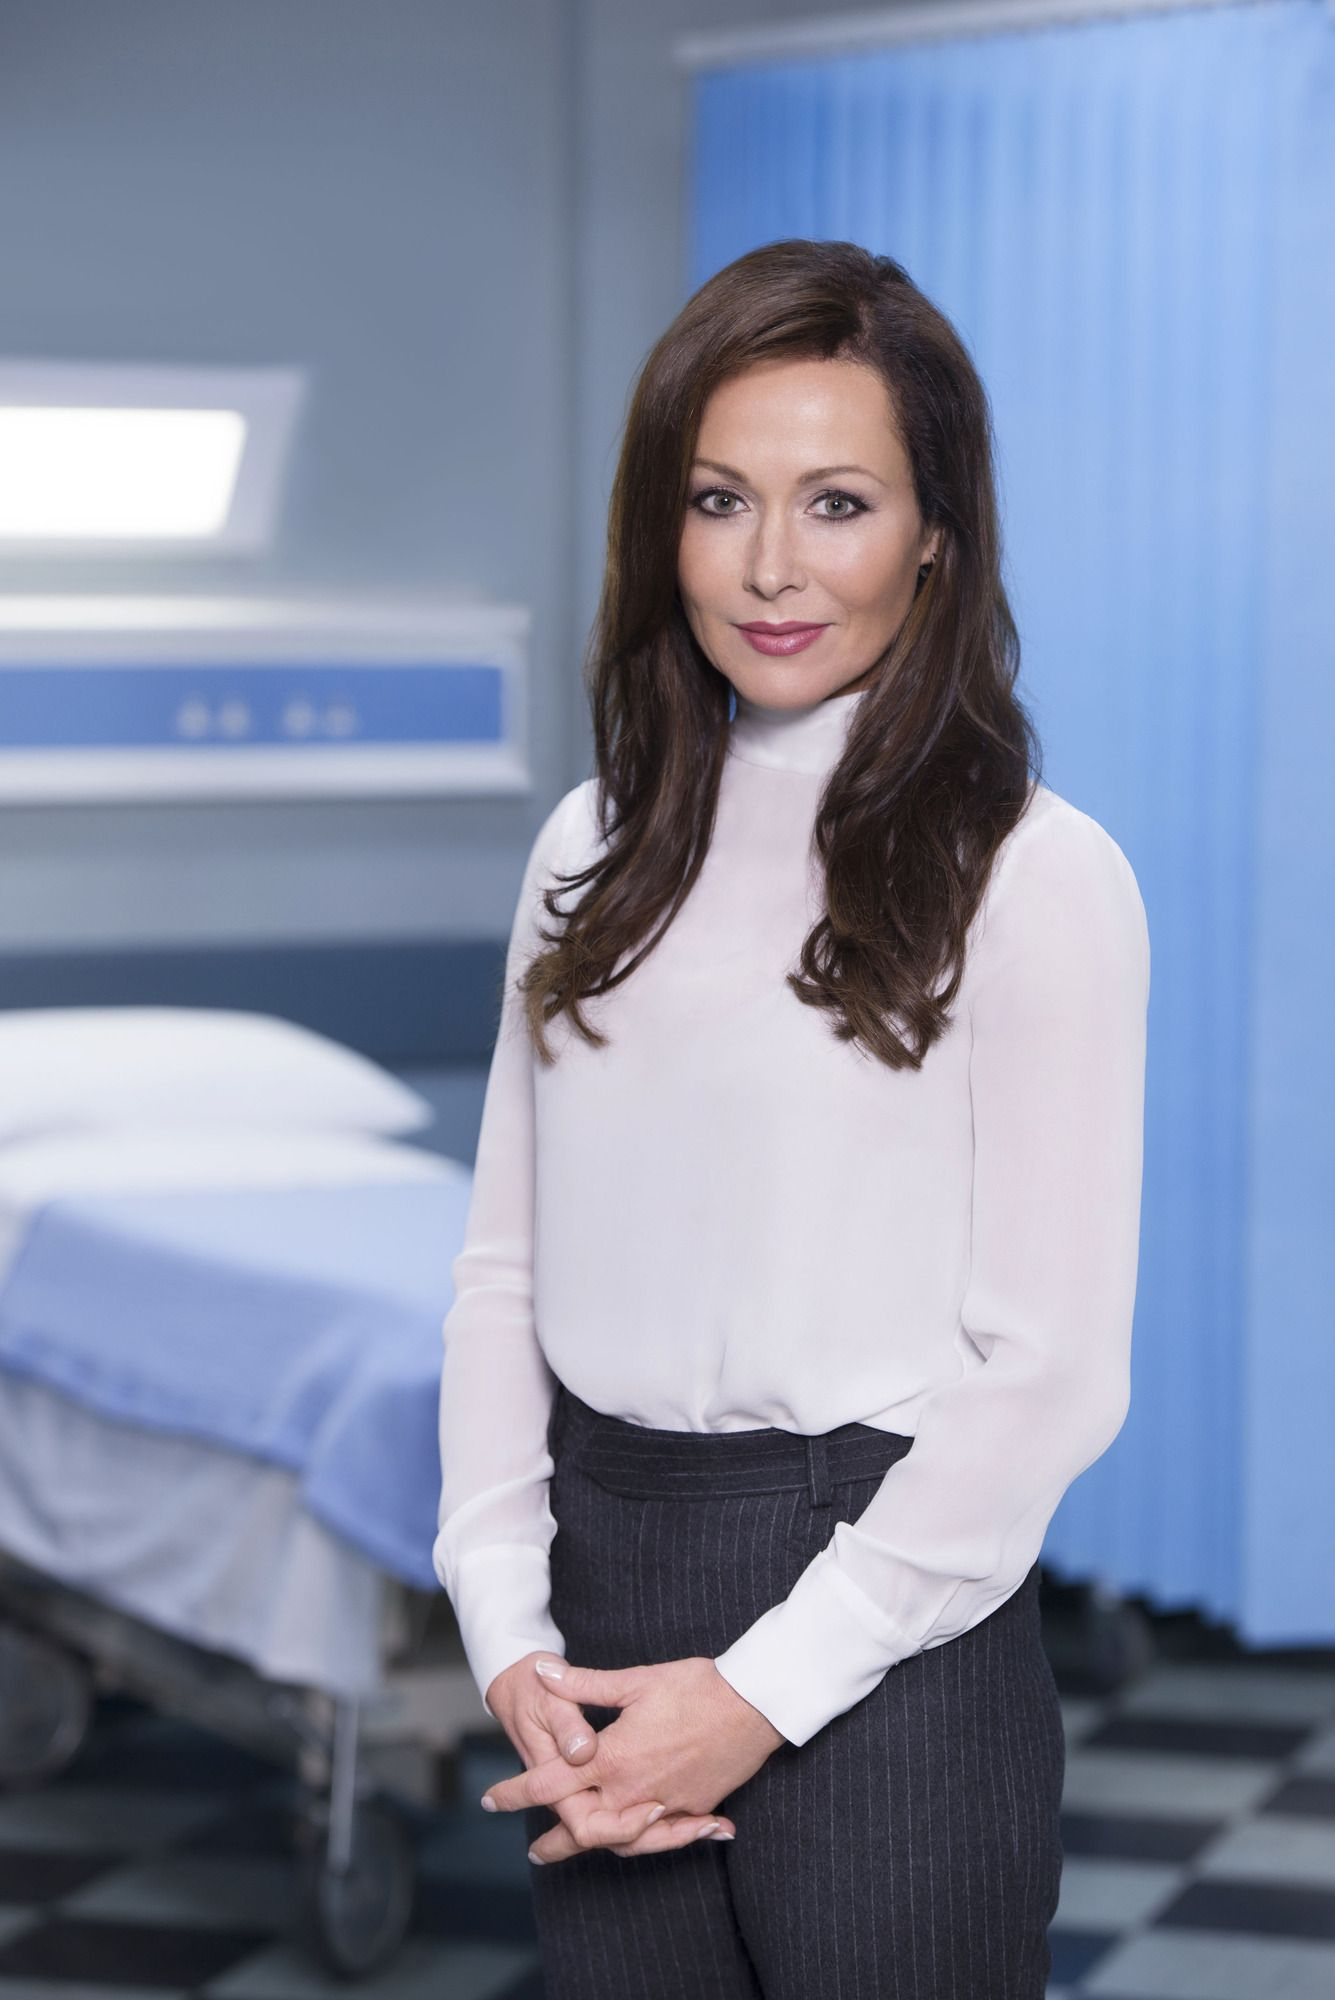 Amanda Mealing Actress casualty's amanda mealing thanks fans for support after that